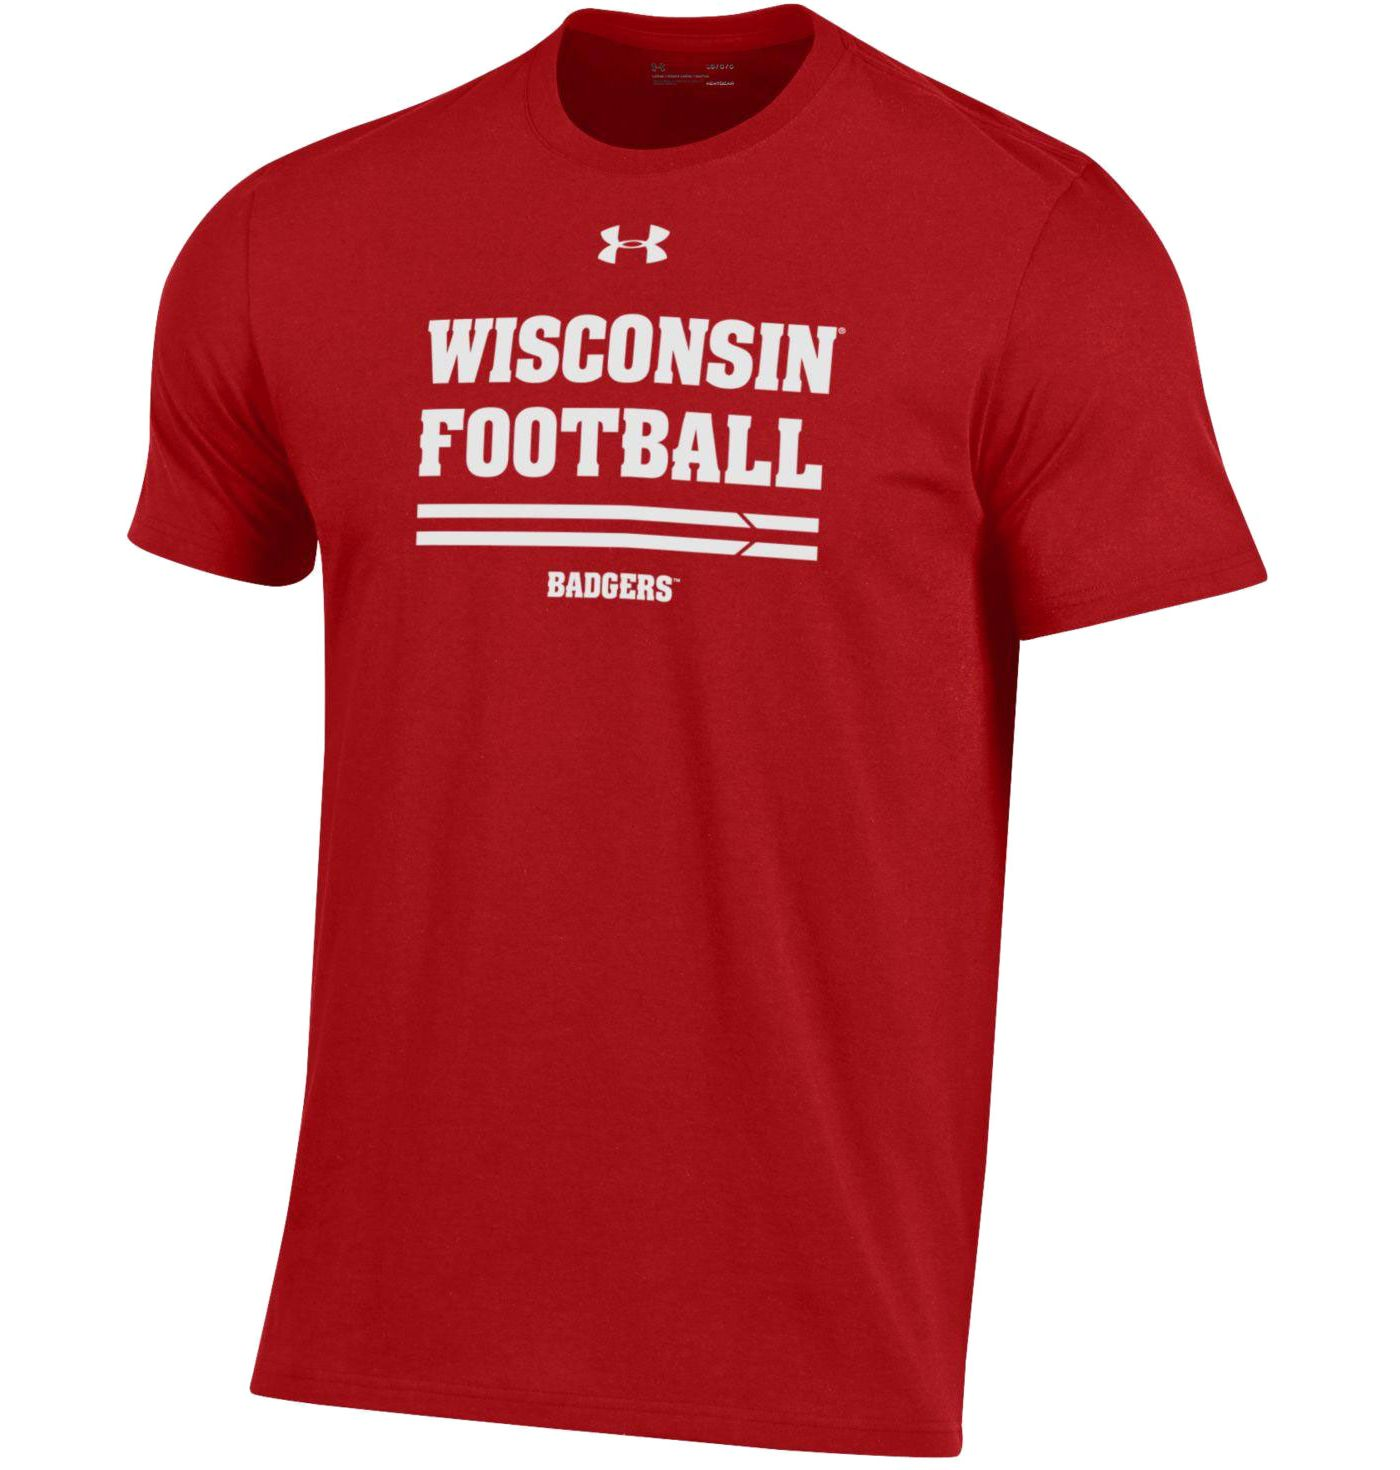 Under Armour Men's Wisconsin Badgers Red Football Performance Cotton T-Shirt